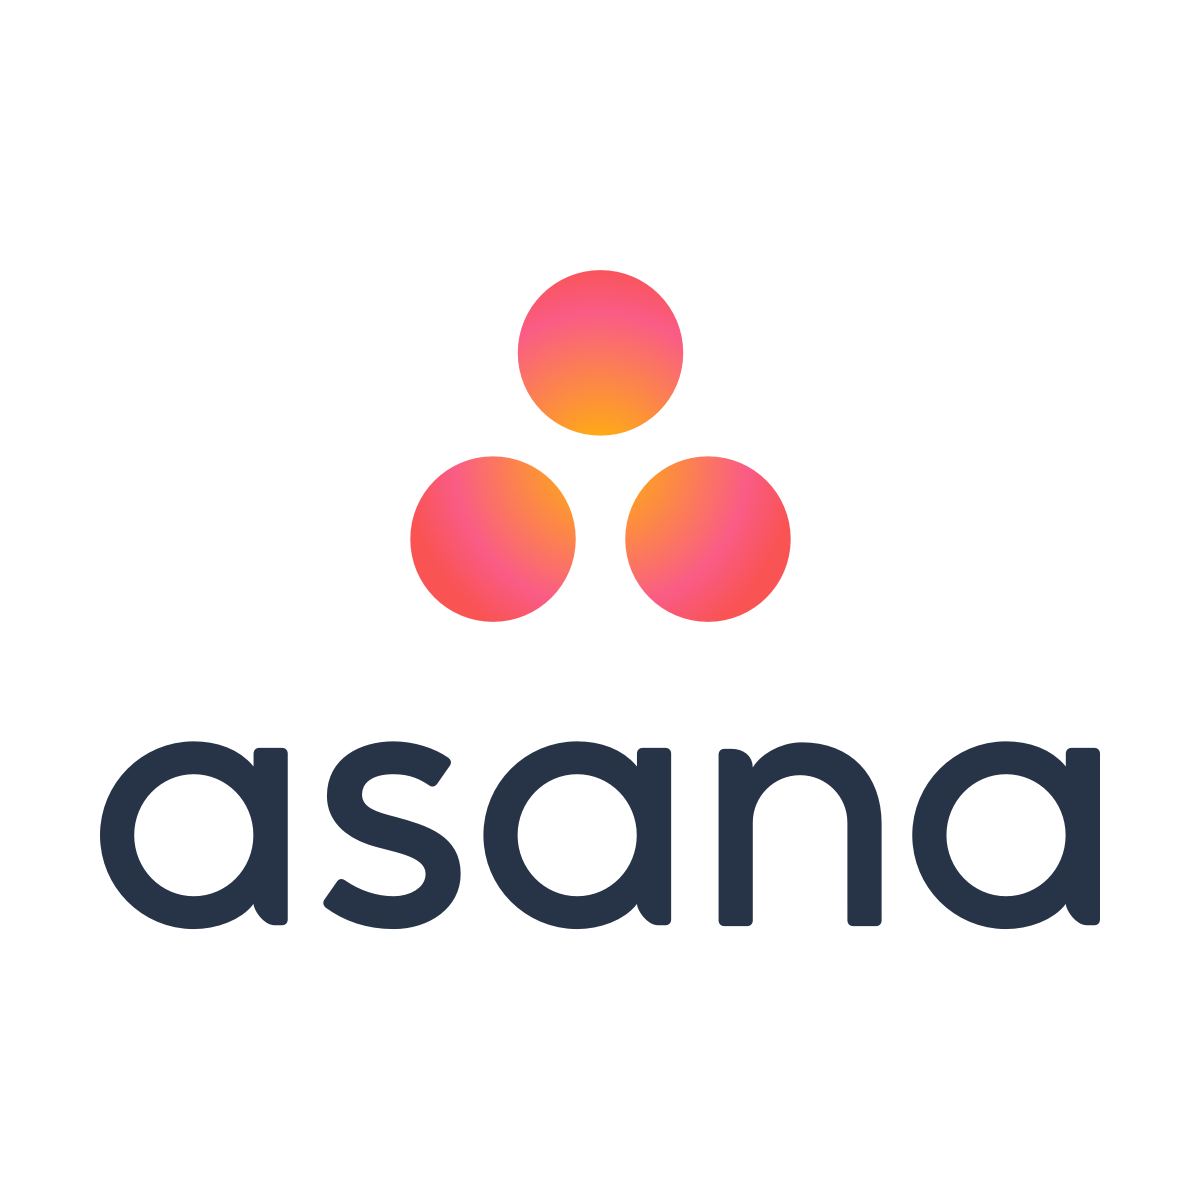 asana is a collaborative project management tool